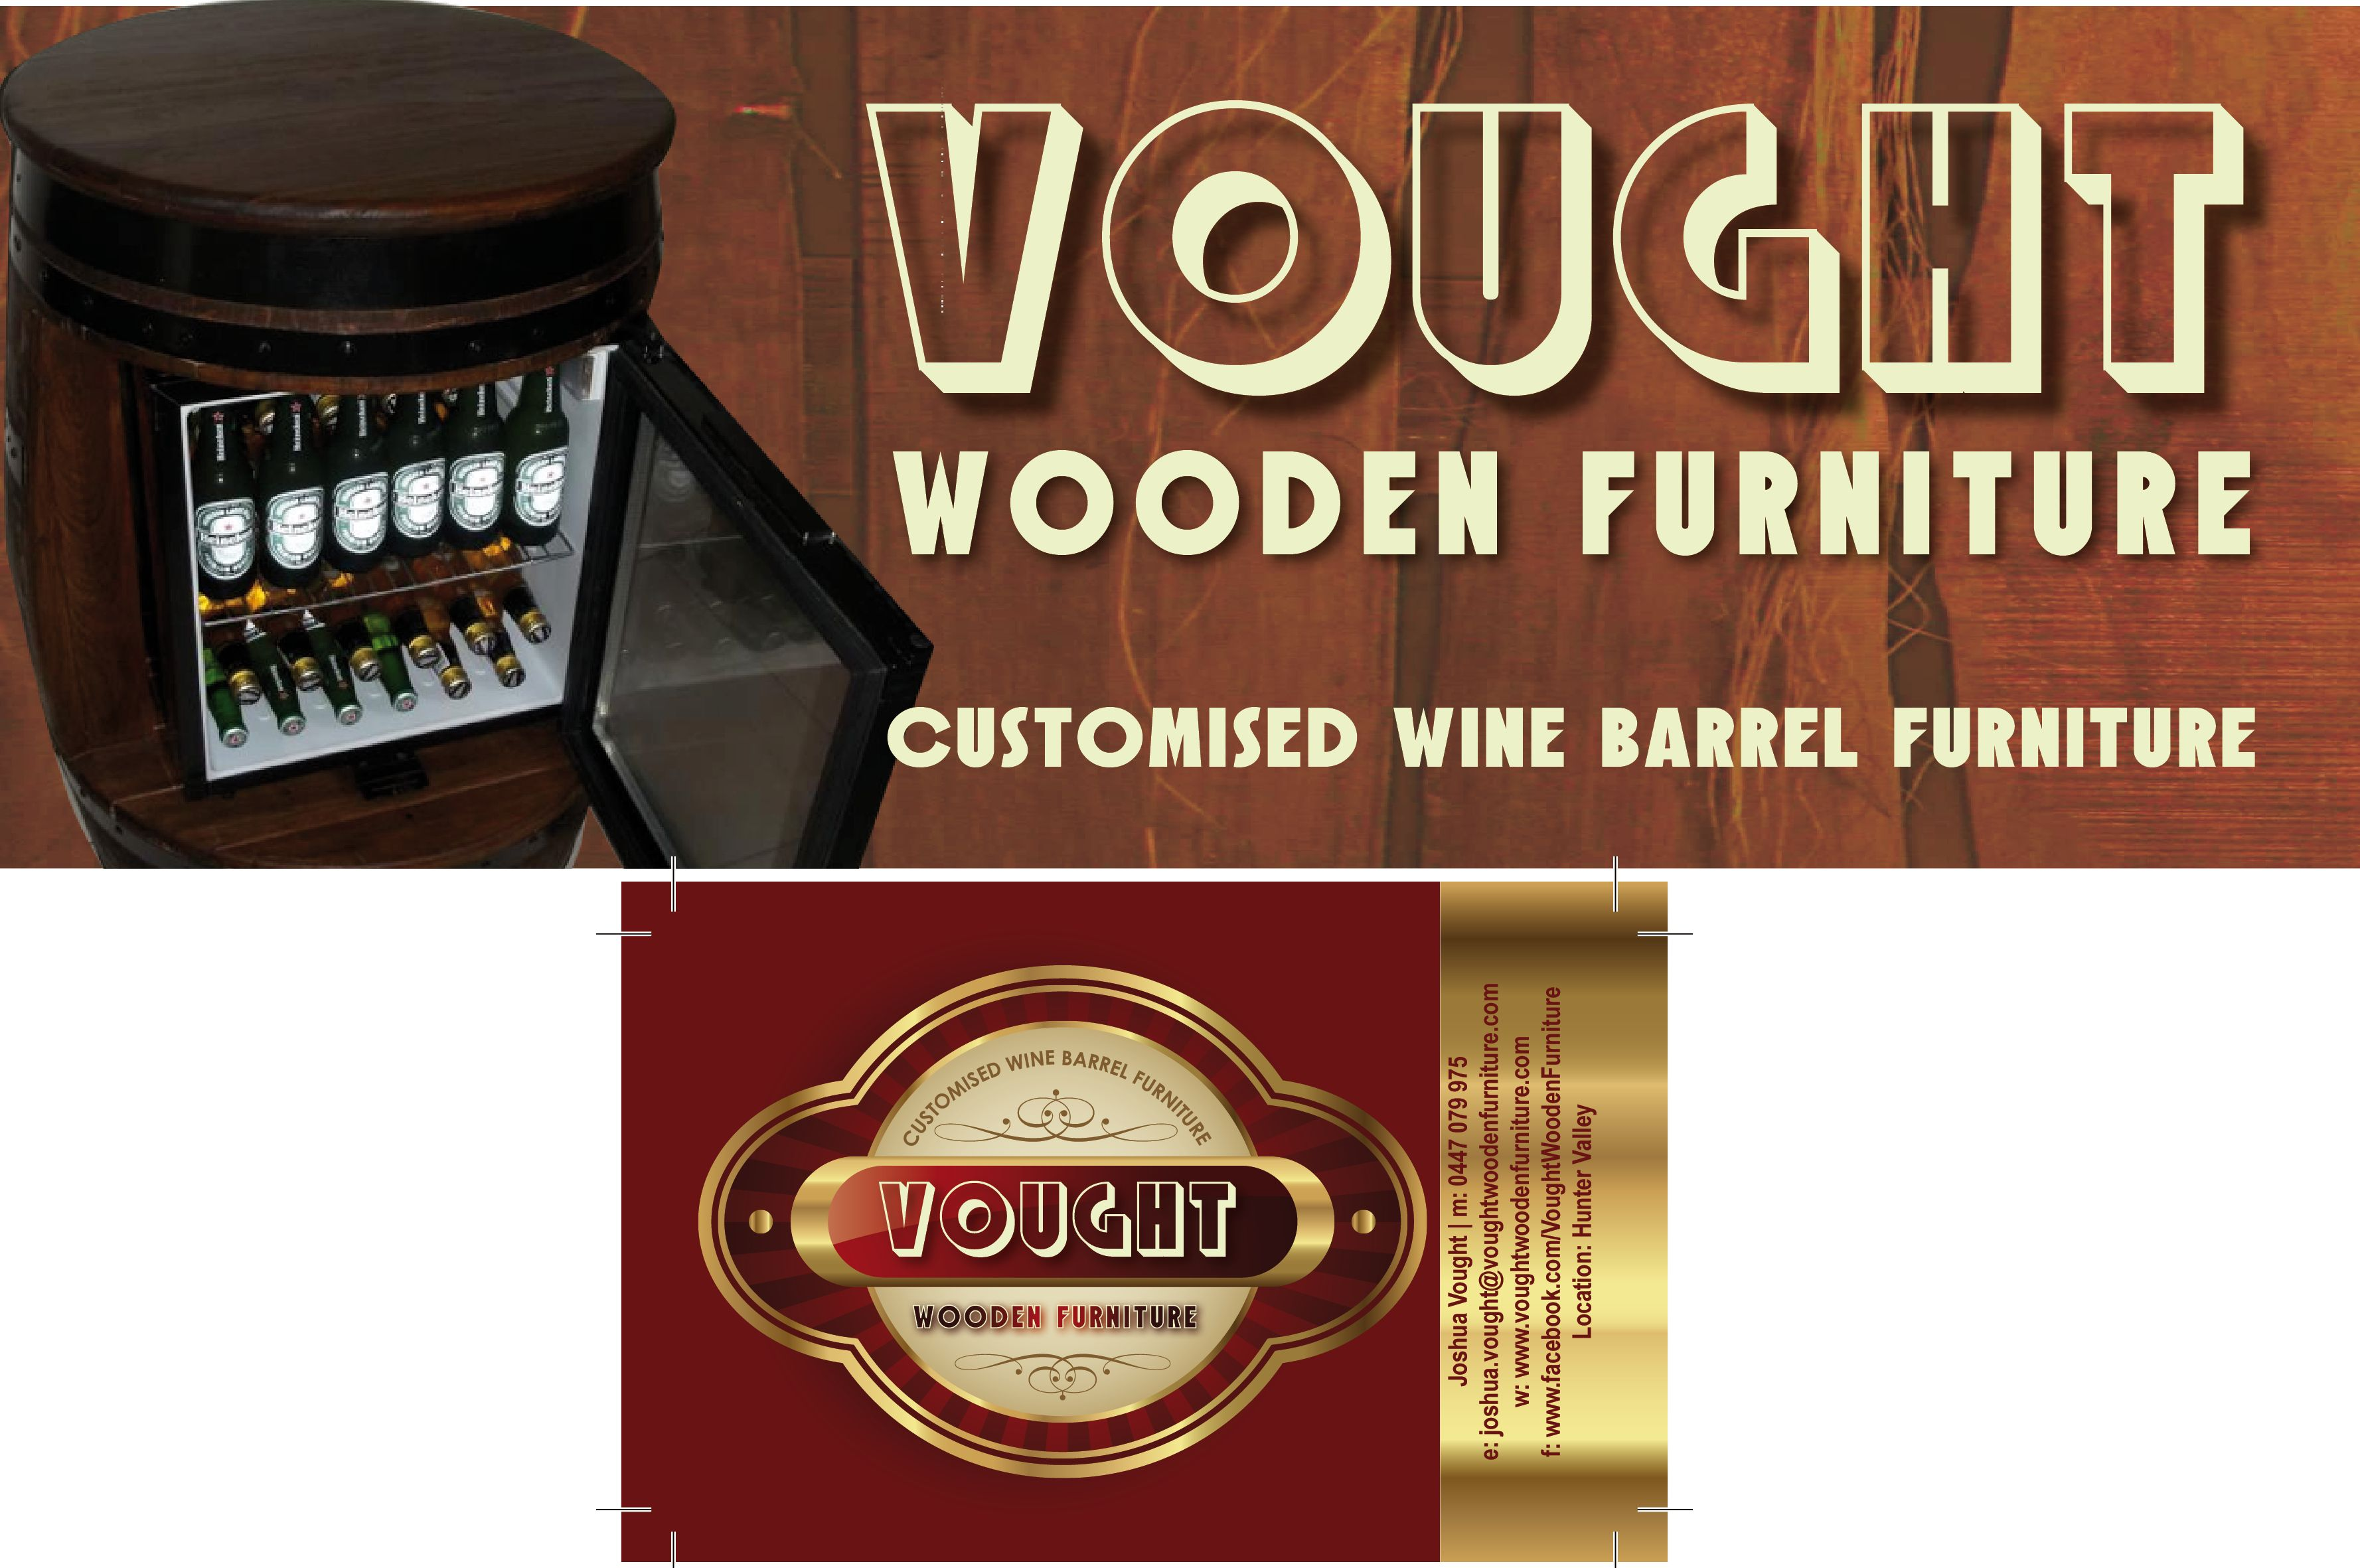 Logo and Business Designs for Vought Wooden Furniture